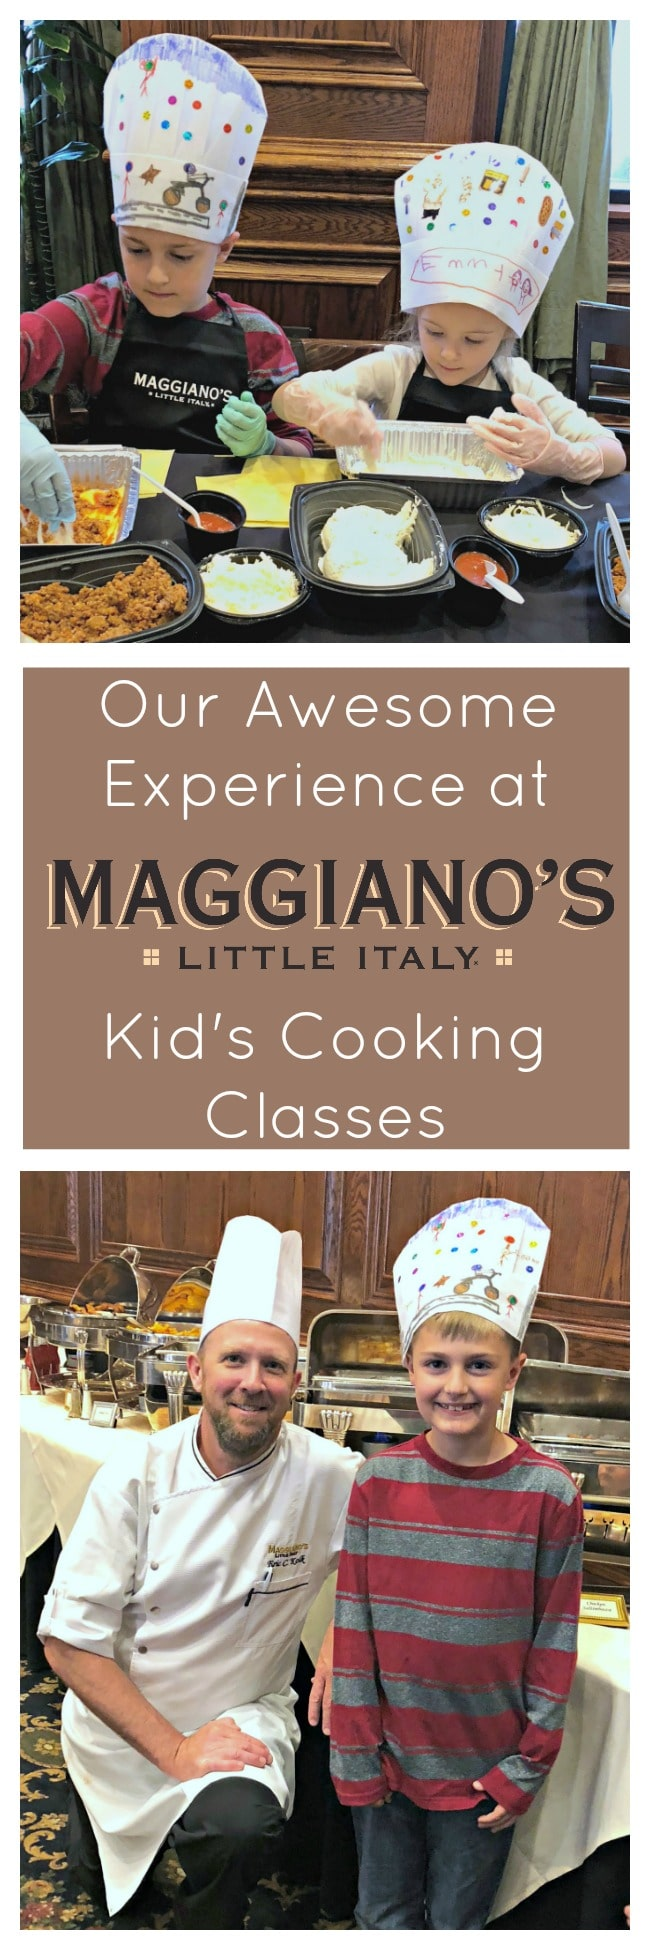 Maggiano's kid's cooking class, cooking classes in Denver for kids, kids cooking classes Colorado, events for kids at Maggiano's Little Italy